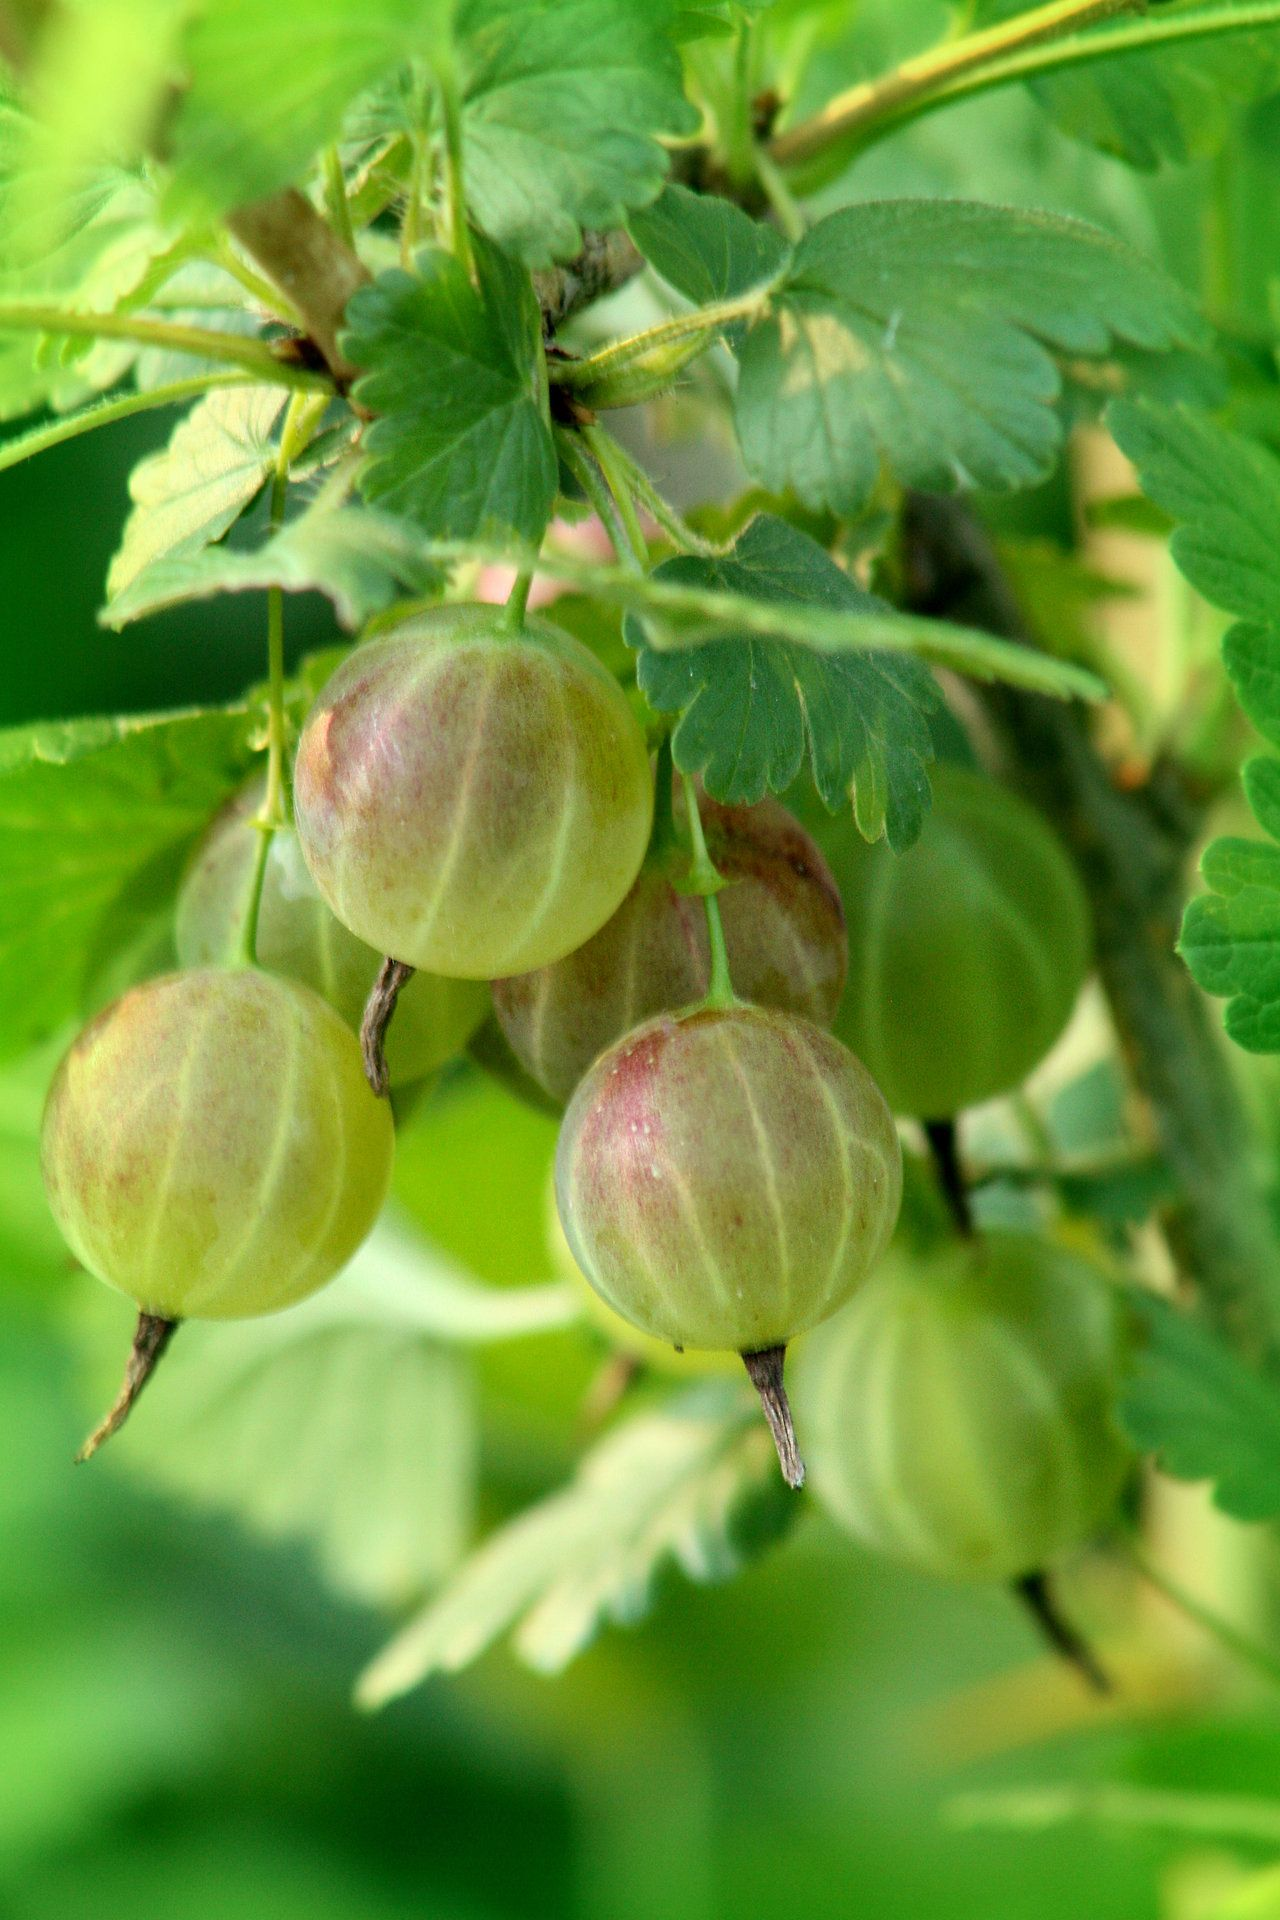 Gooseberries in order to grow need freezing winters and humid summers. These berries are so delicious!